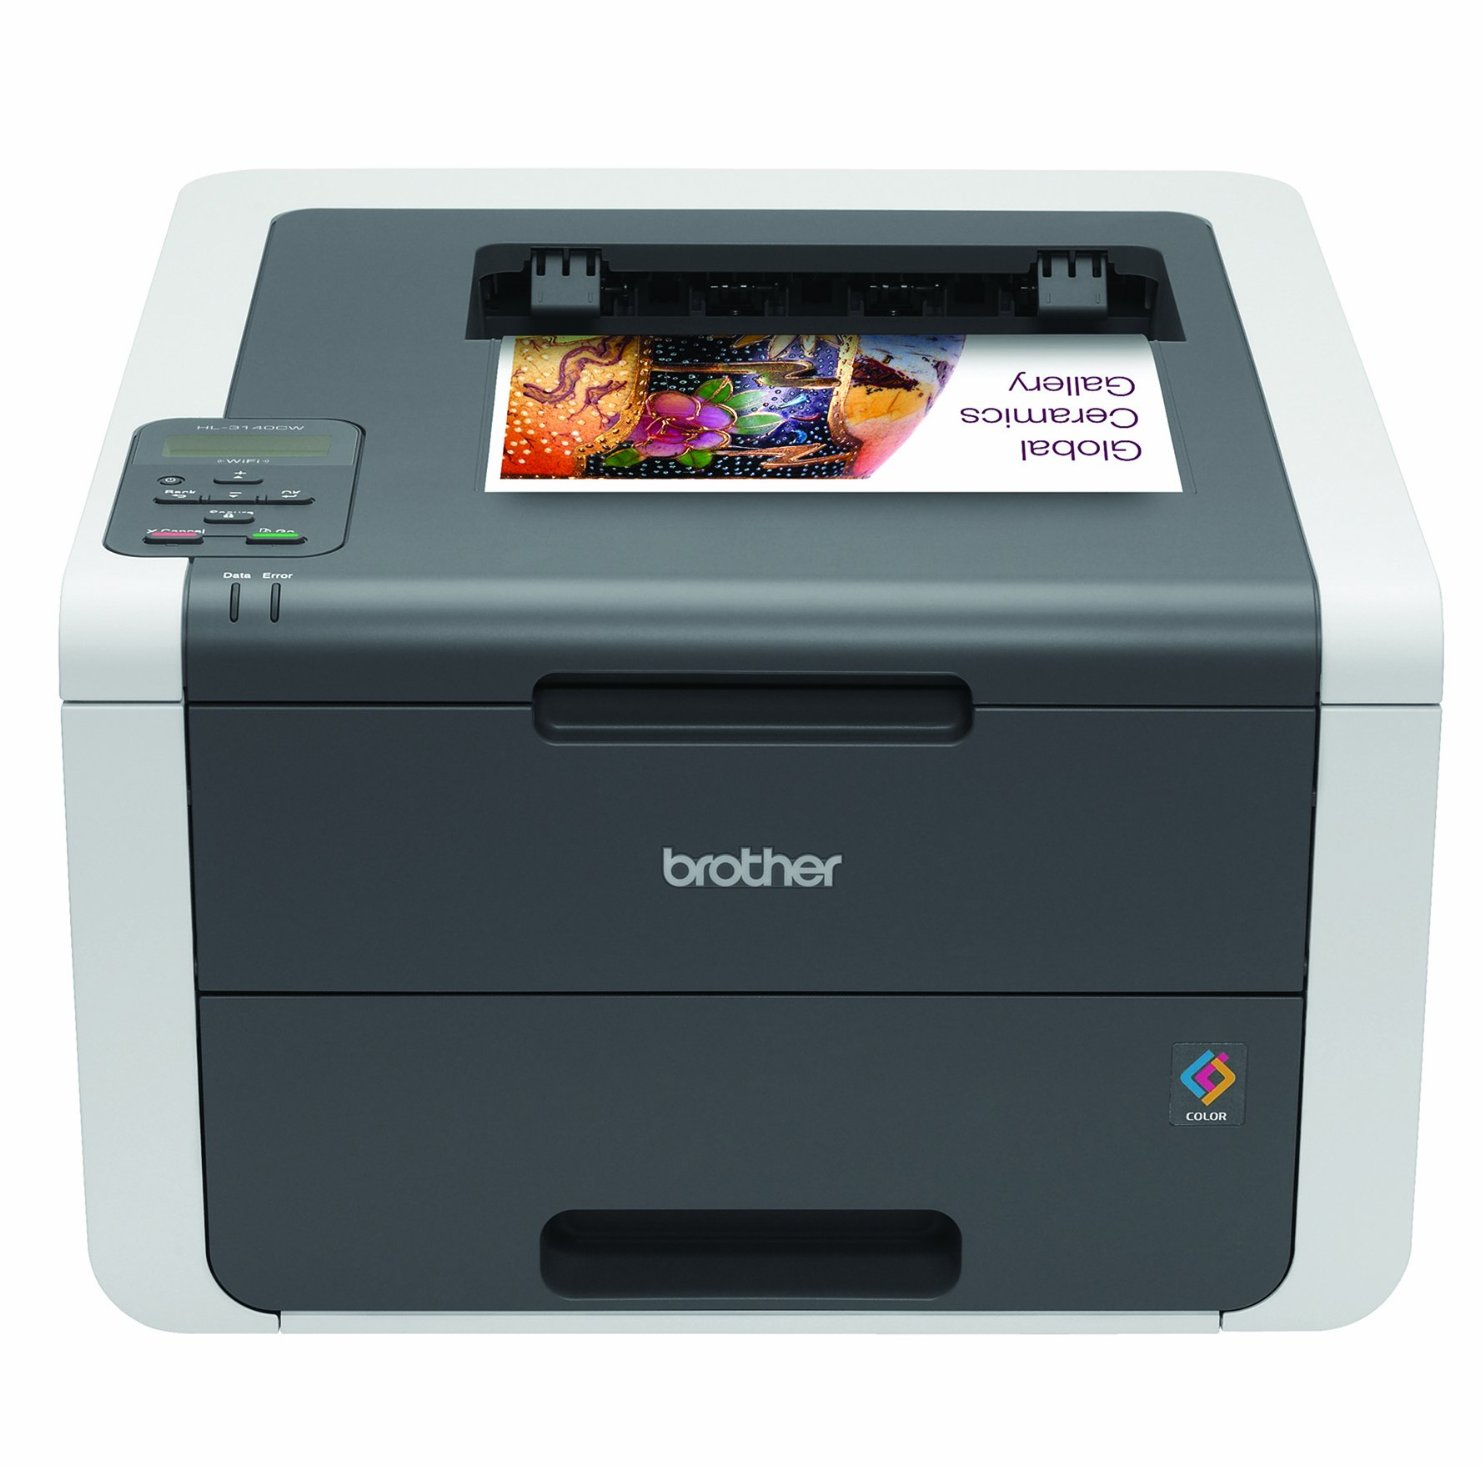 Best Color Laser Printer For Home And Small Business Color